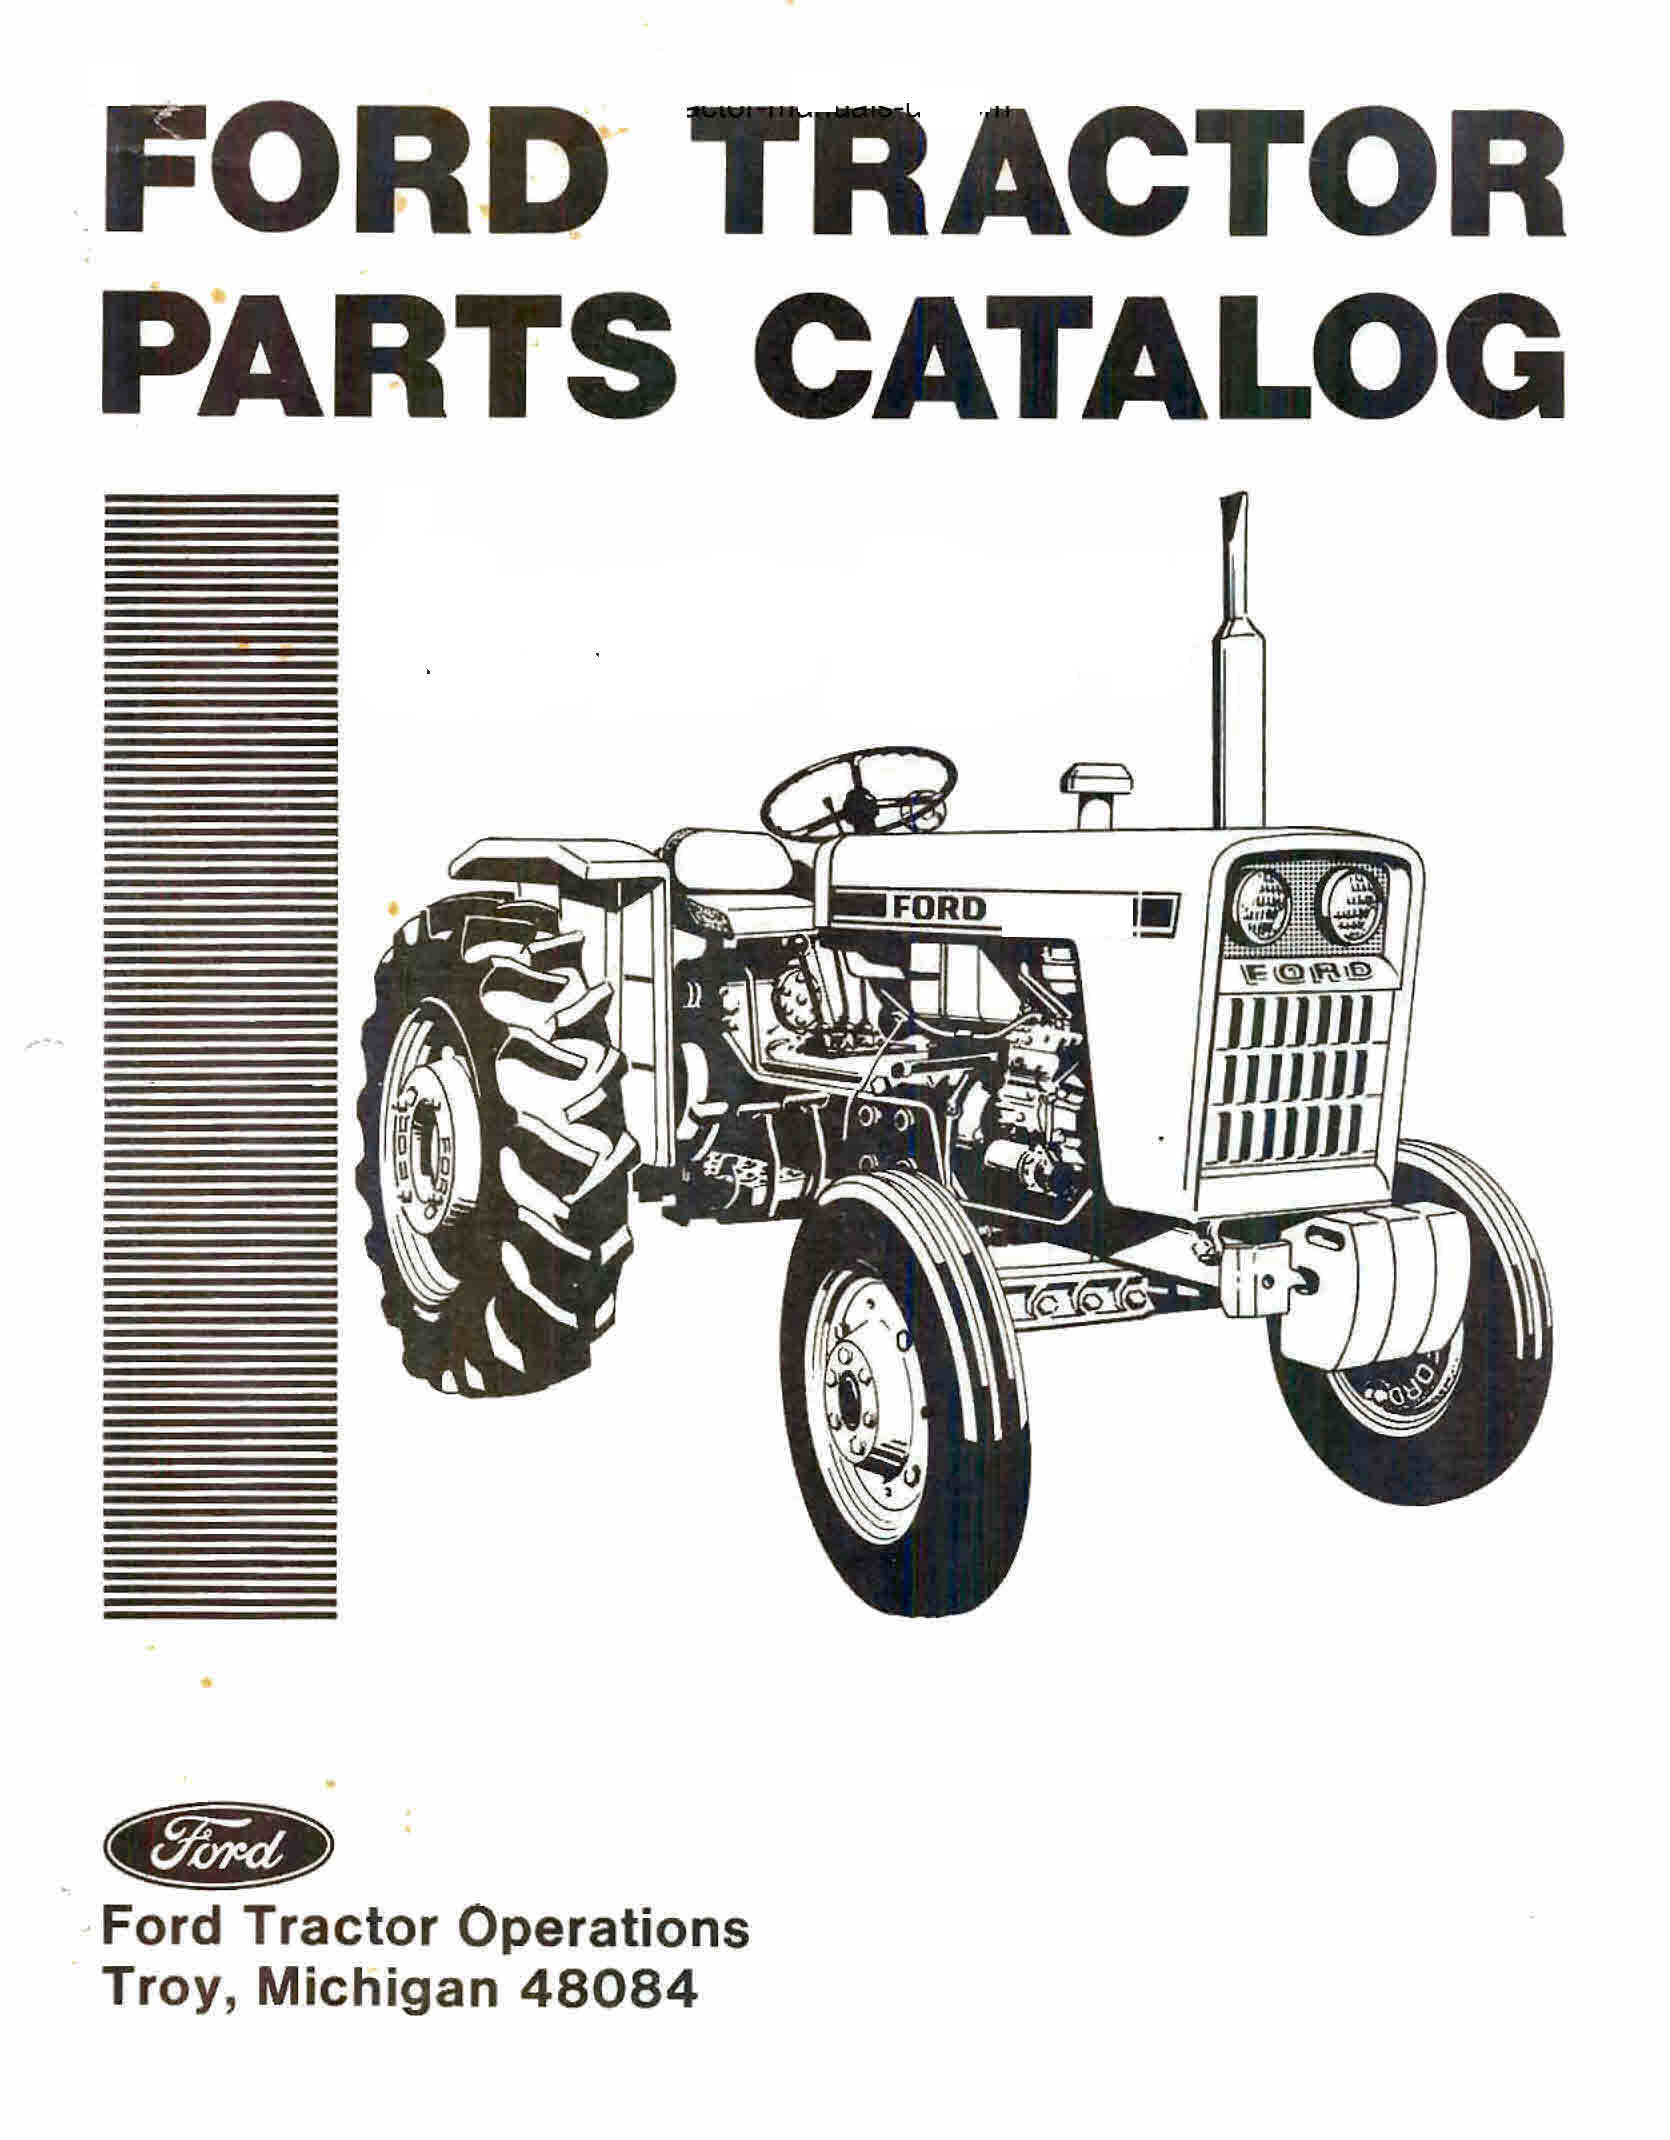 Ford 3000 Tractor Parts Diagram Wiring Data 3400 Manual Ebooks Automotive 5000